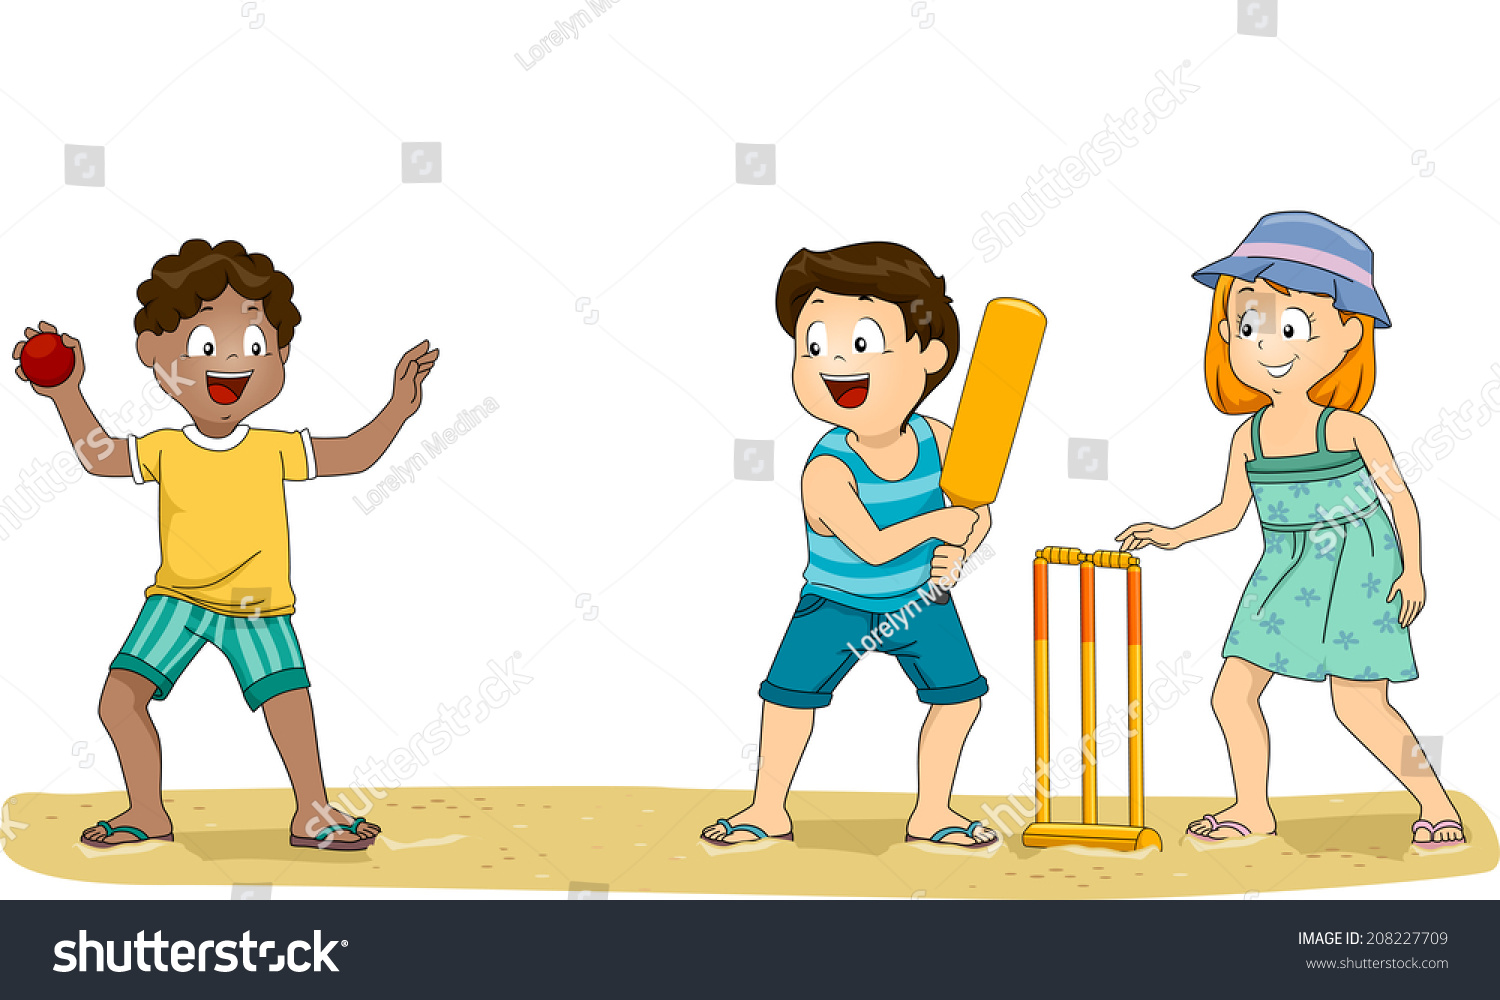 Illustration Group Kids Playing Cricket Beach Stock Vector ...